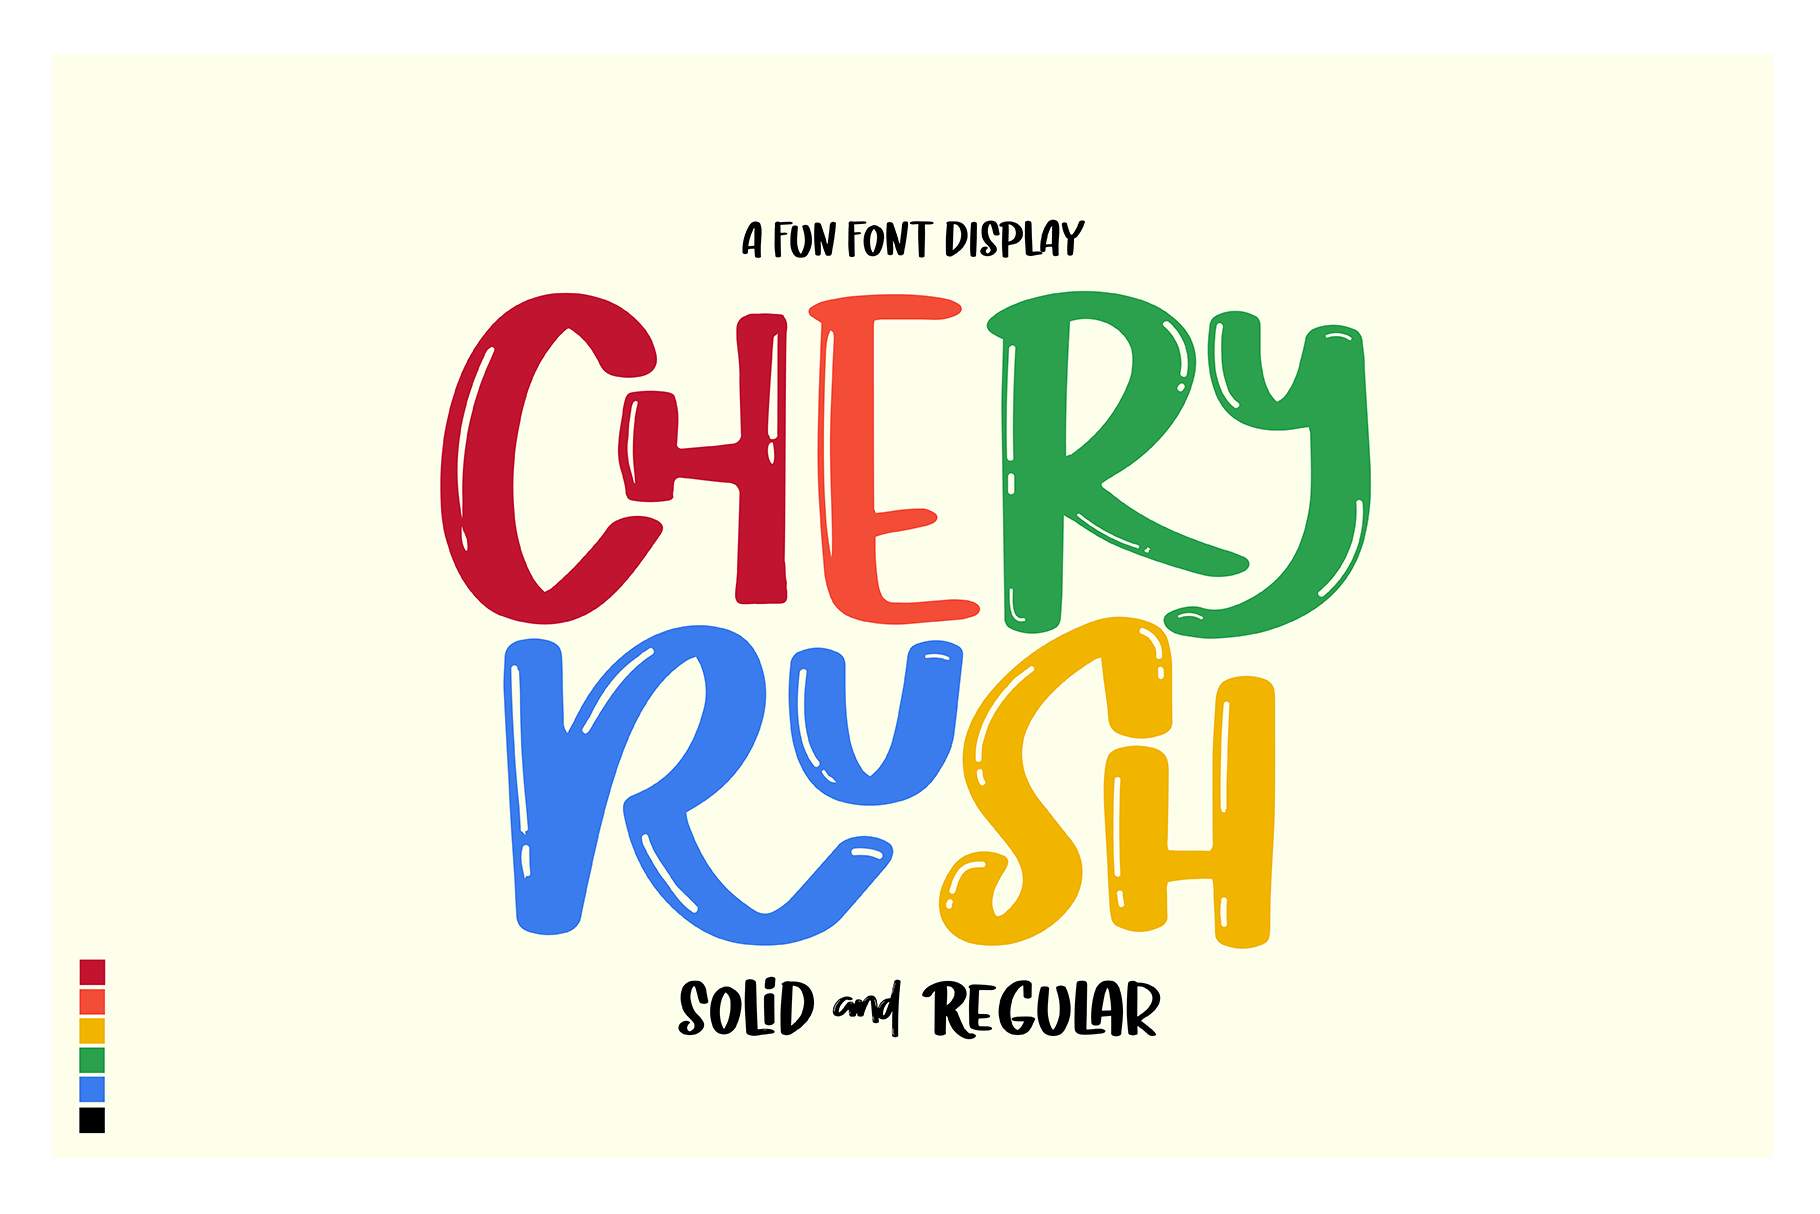 CHERY-RUSH-PREVIEW-01